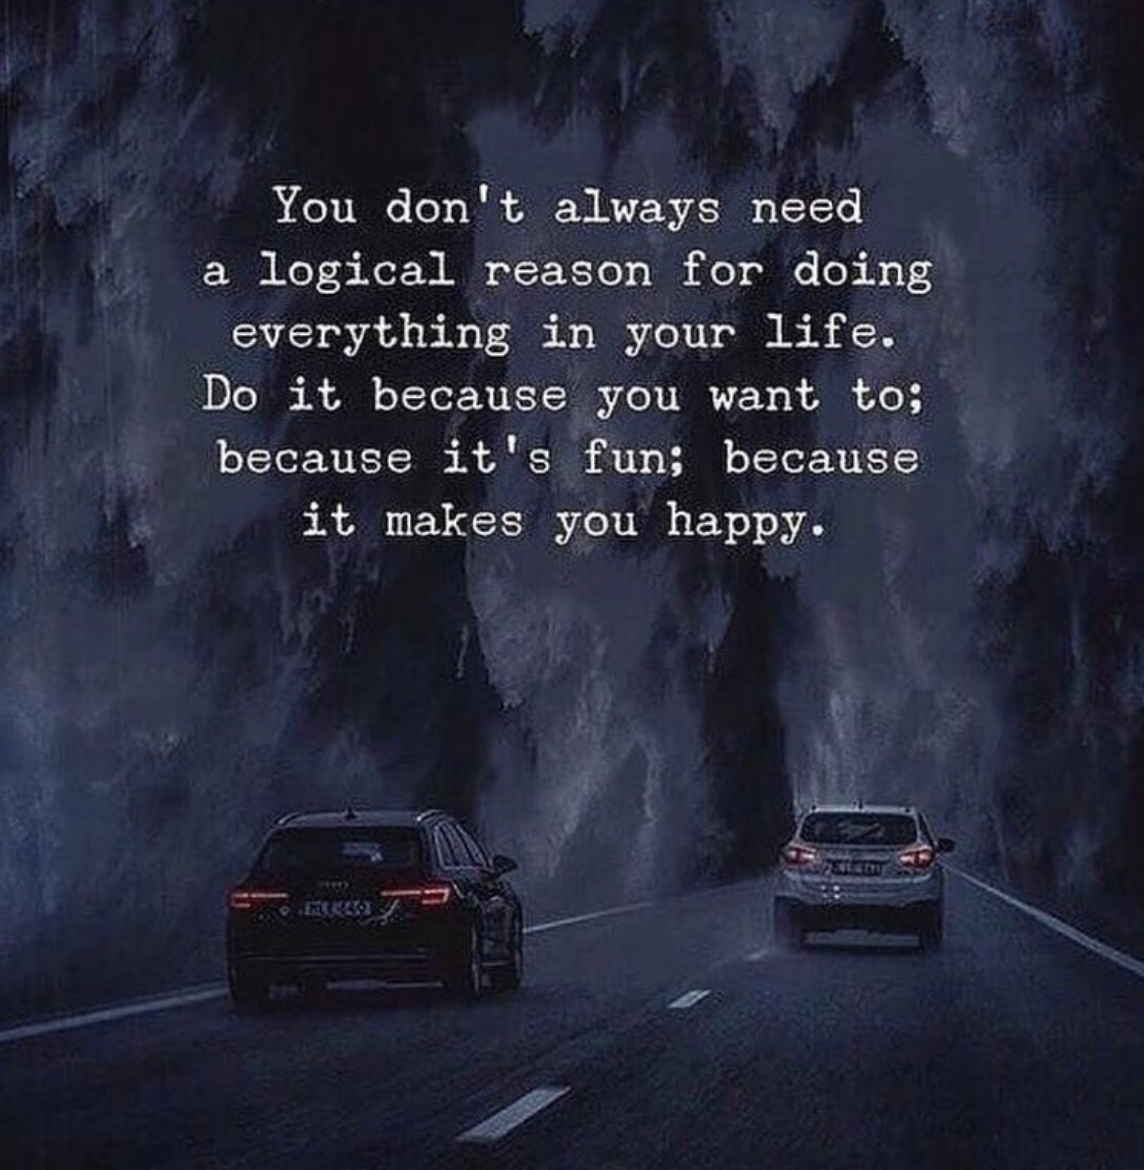 [Image] You don't always need a logical reason for doing everything in your life. Do it because you want to; because it's fun; because it makes you happy.